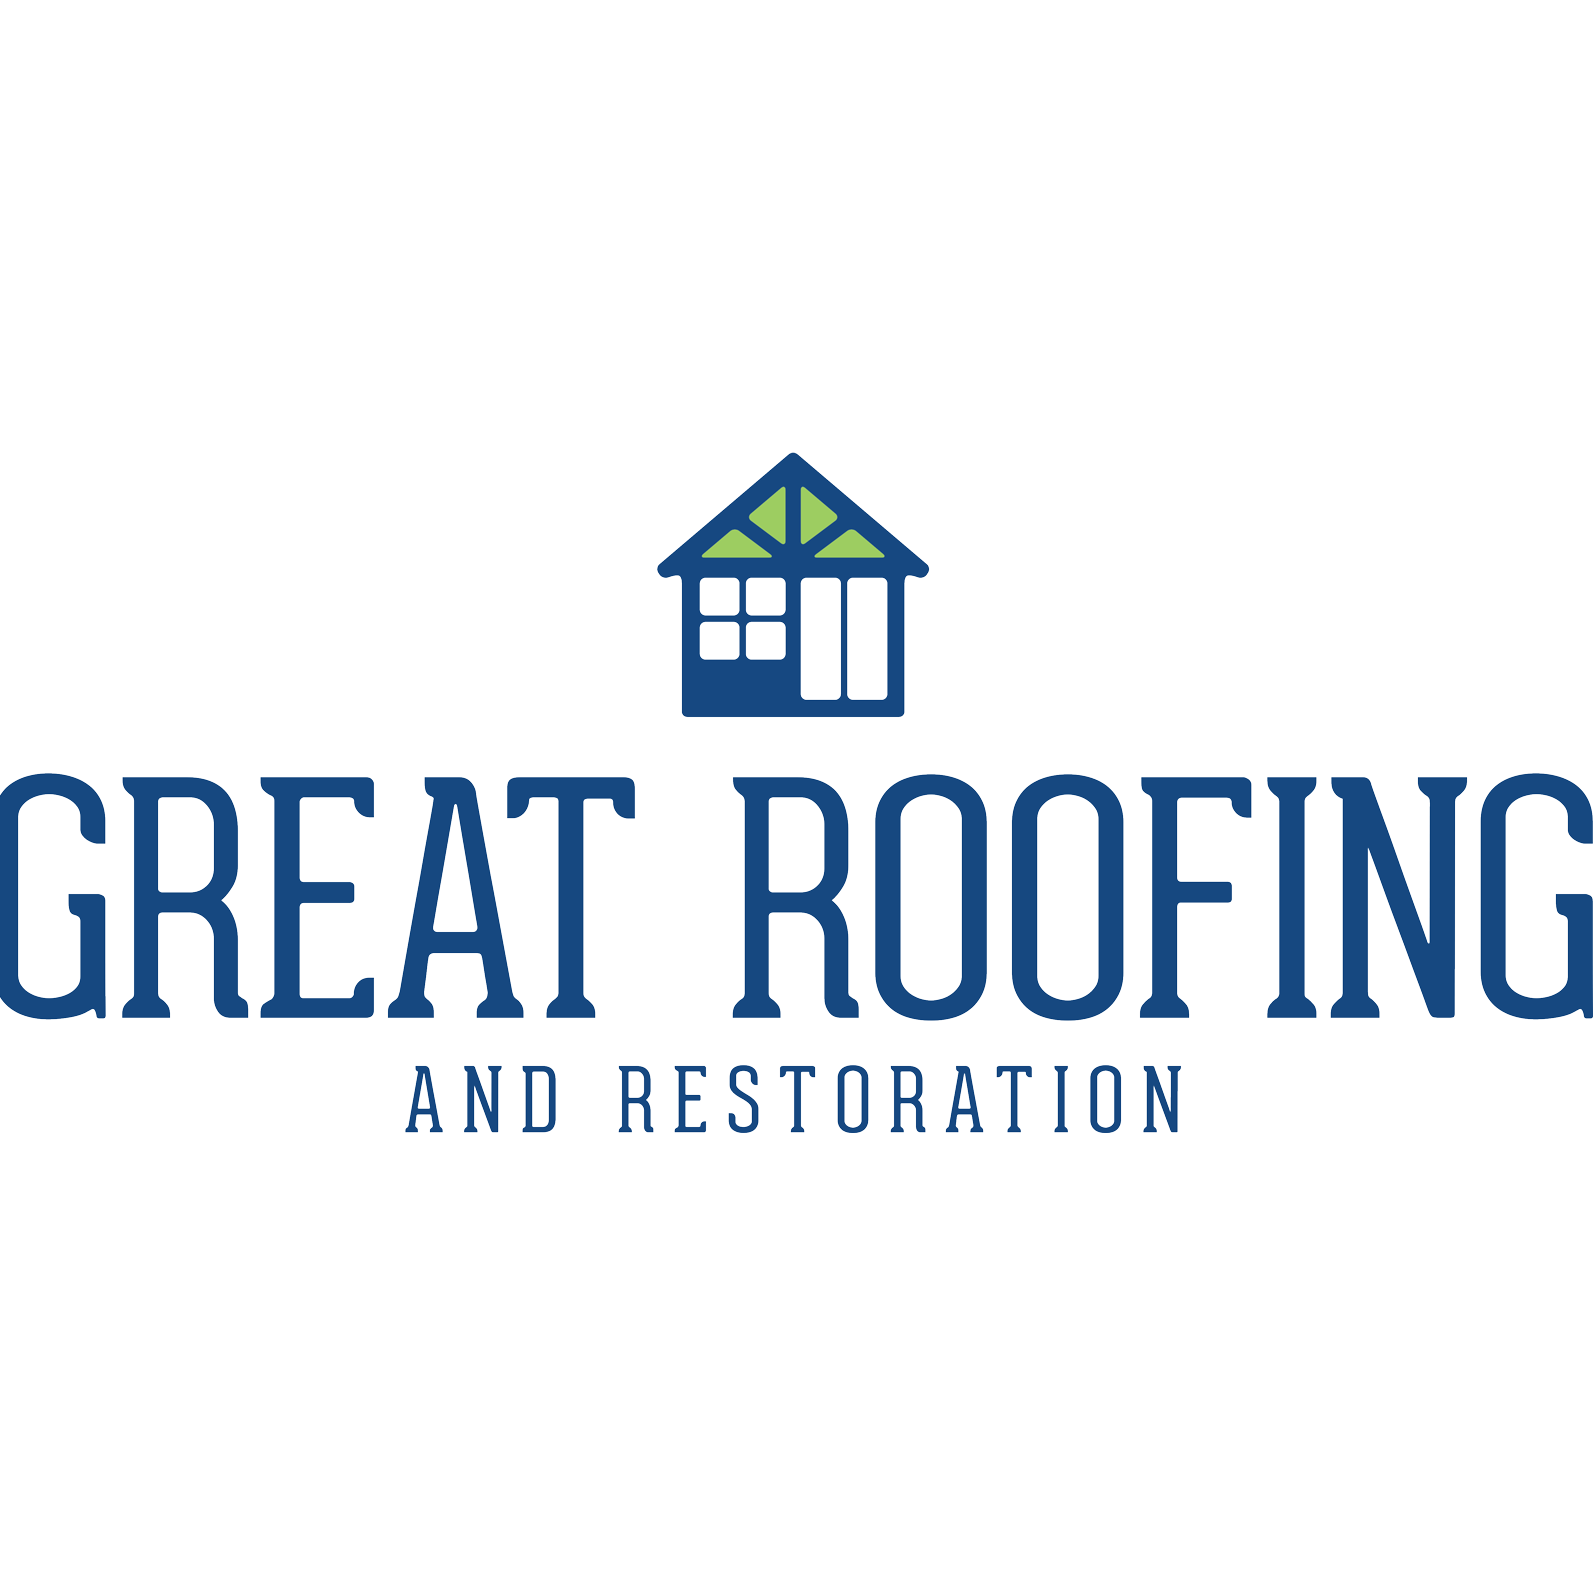 Great Roofing & Restoration - Colorado Springs, CO 80920 - (719)622-6171 | ShowMeLocal.com